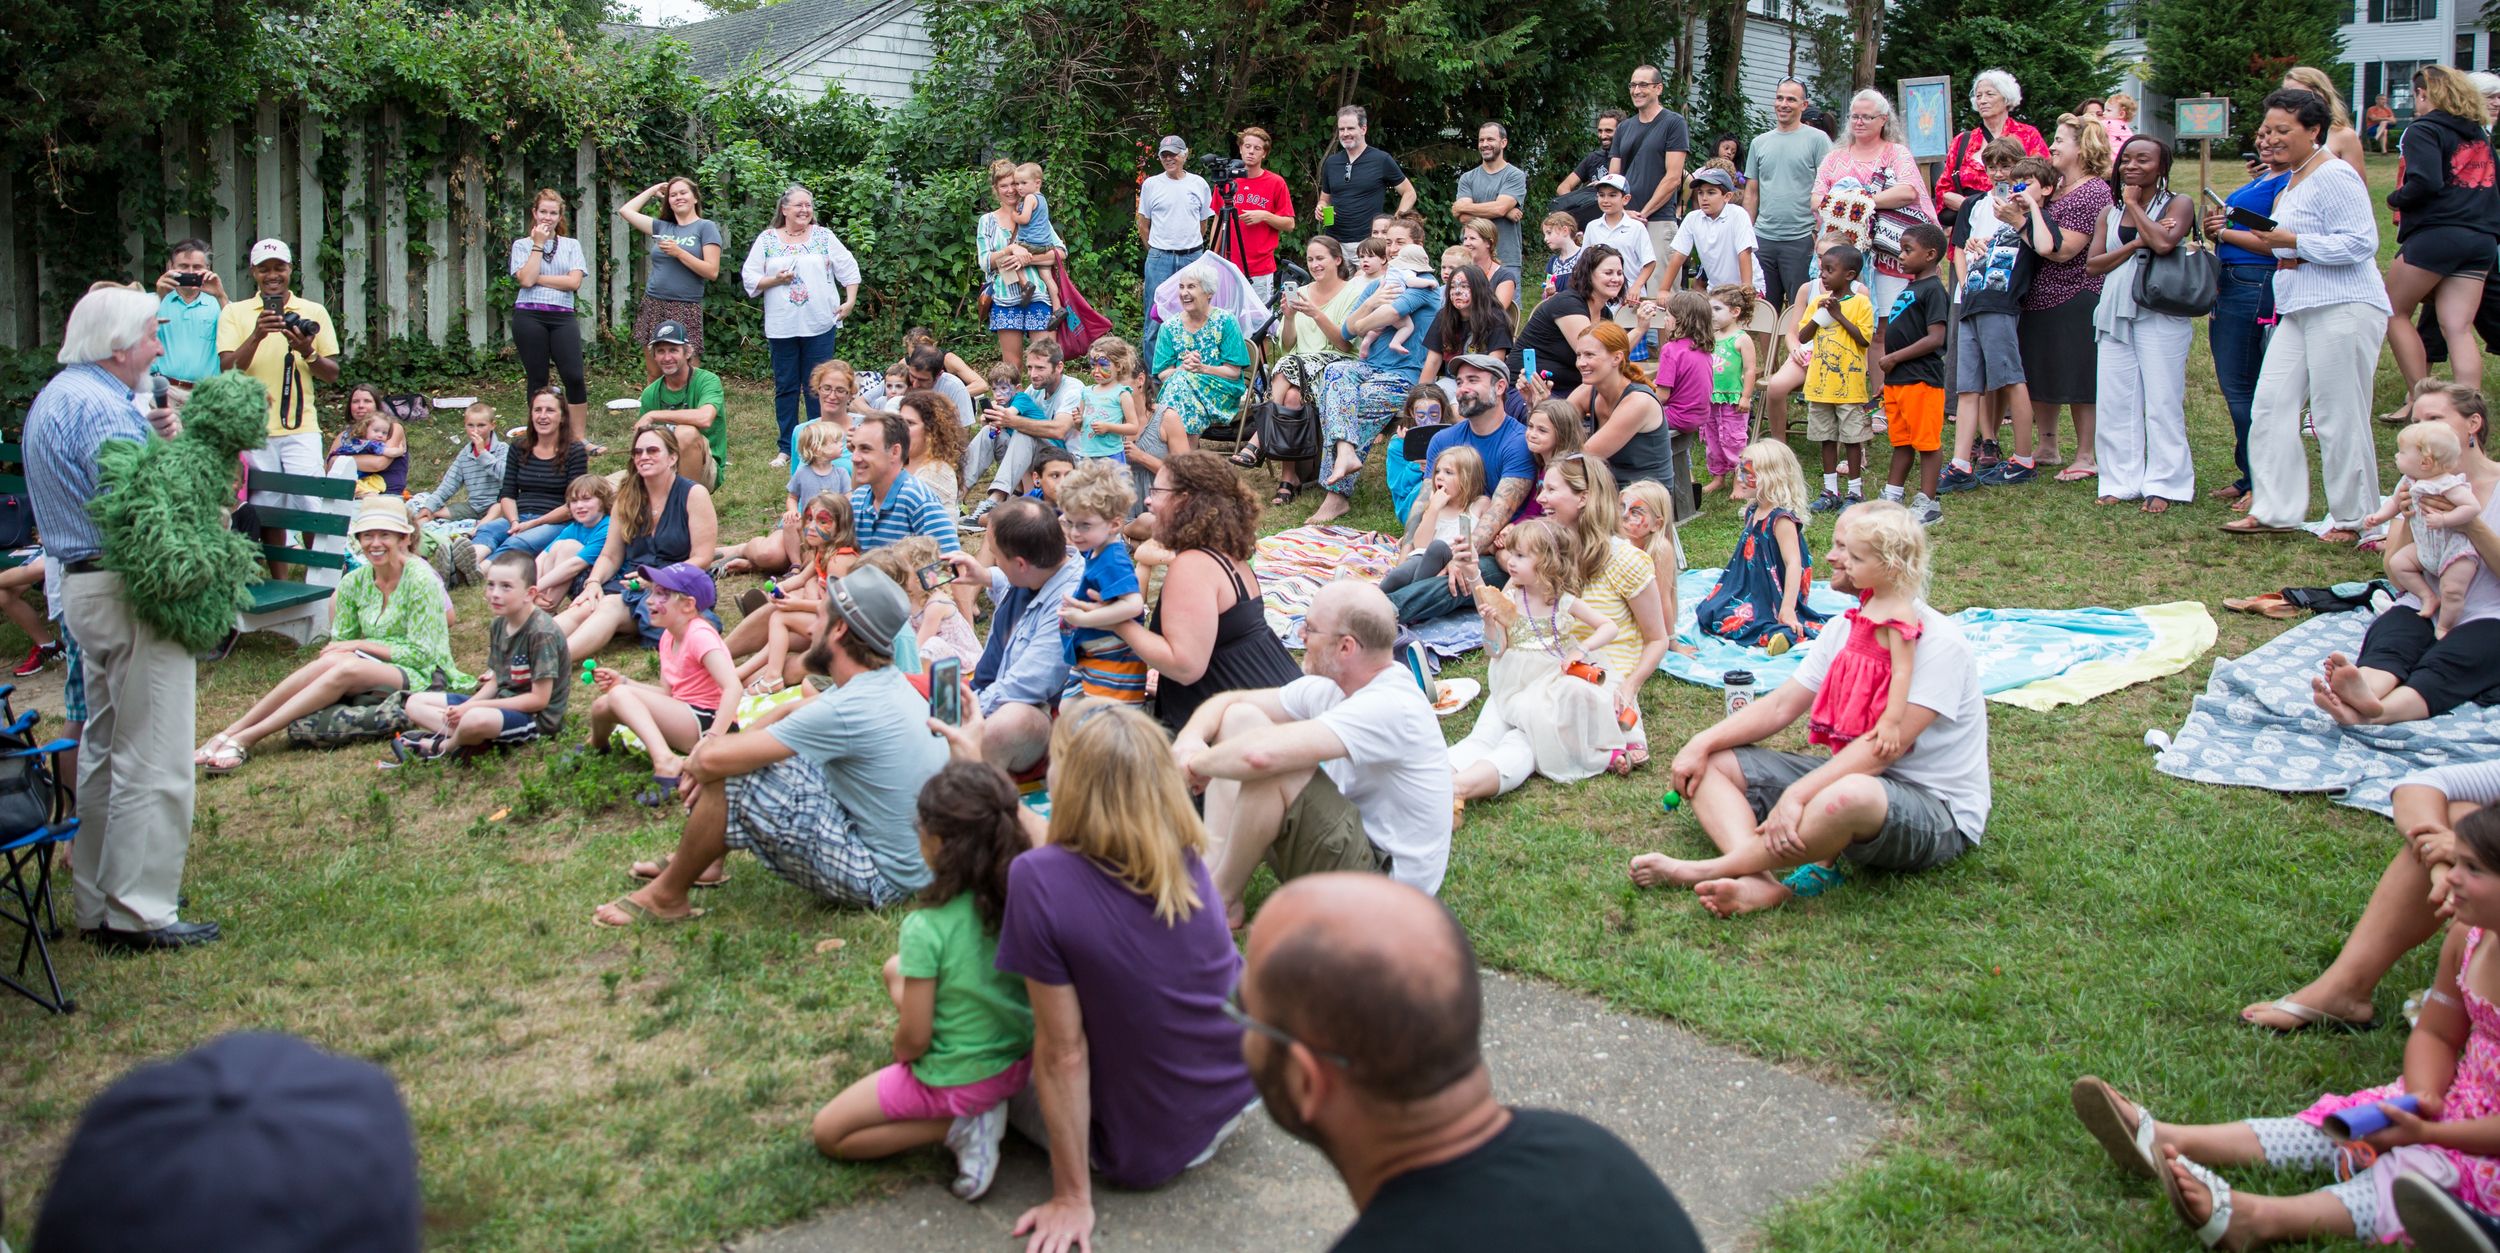 """Caroll Spinney (a.k.a. Big Bird and Oscar the Grouch) sings """"I Love Trash"""" at the free puppet-making workshop before the screening of I AM BIG BIRD on July 30, 2015,at Owen Park in Vineyard Haven.Photo by Maria Thibodeau."""